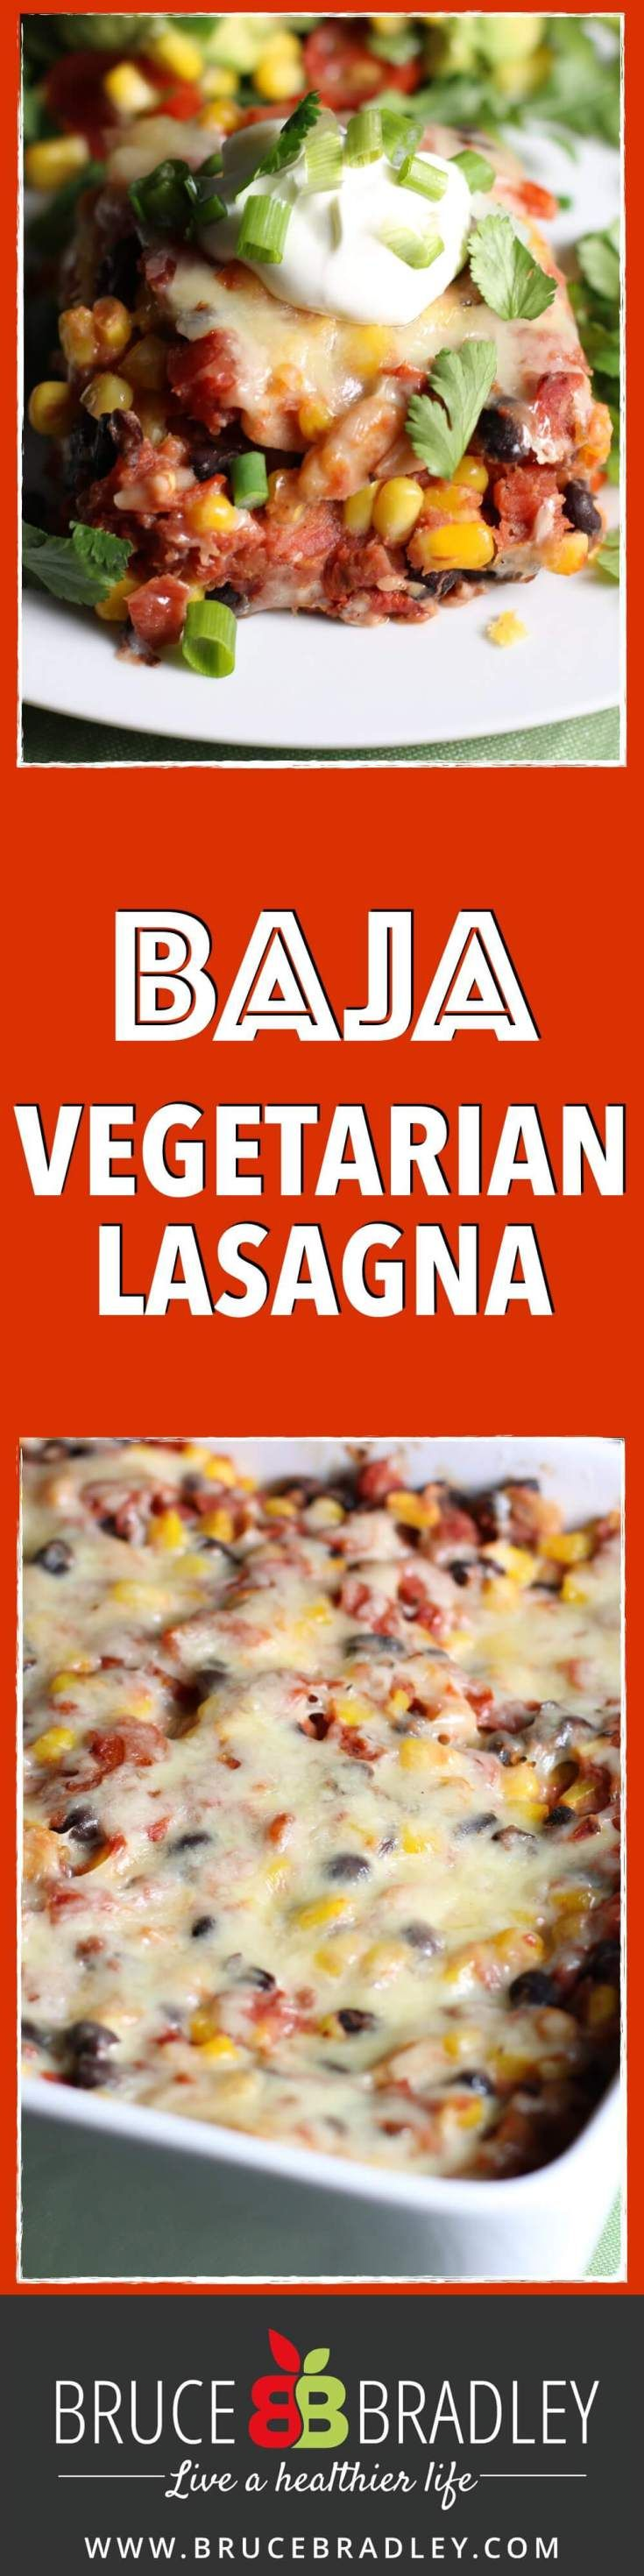 Baha Vegetarian Lasagna is a one-dish, Mexican-inspired lasagna that comes together quickly thanks to mostly canned and frozen real food ingredients!